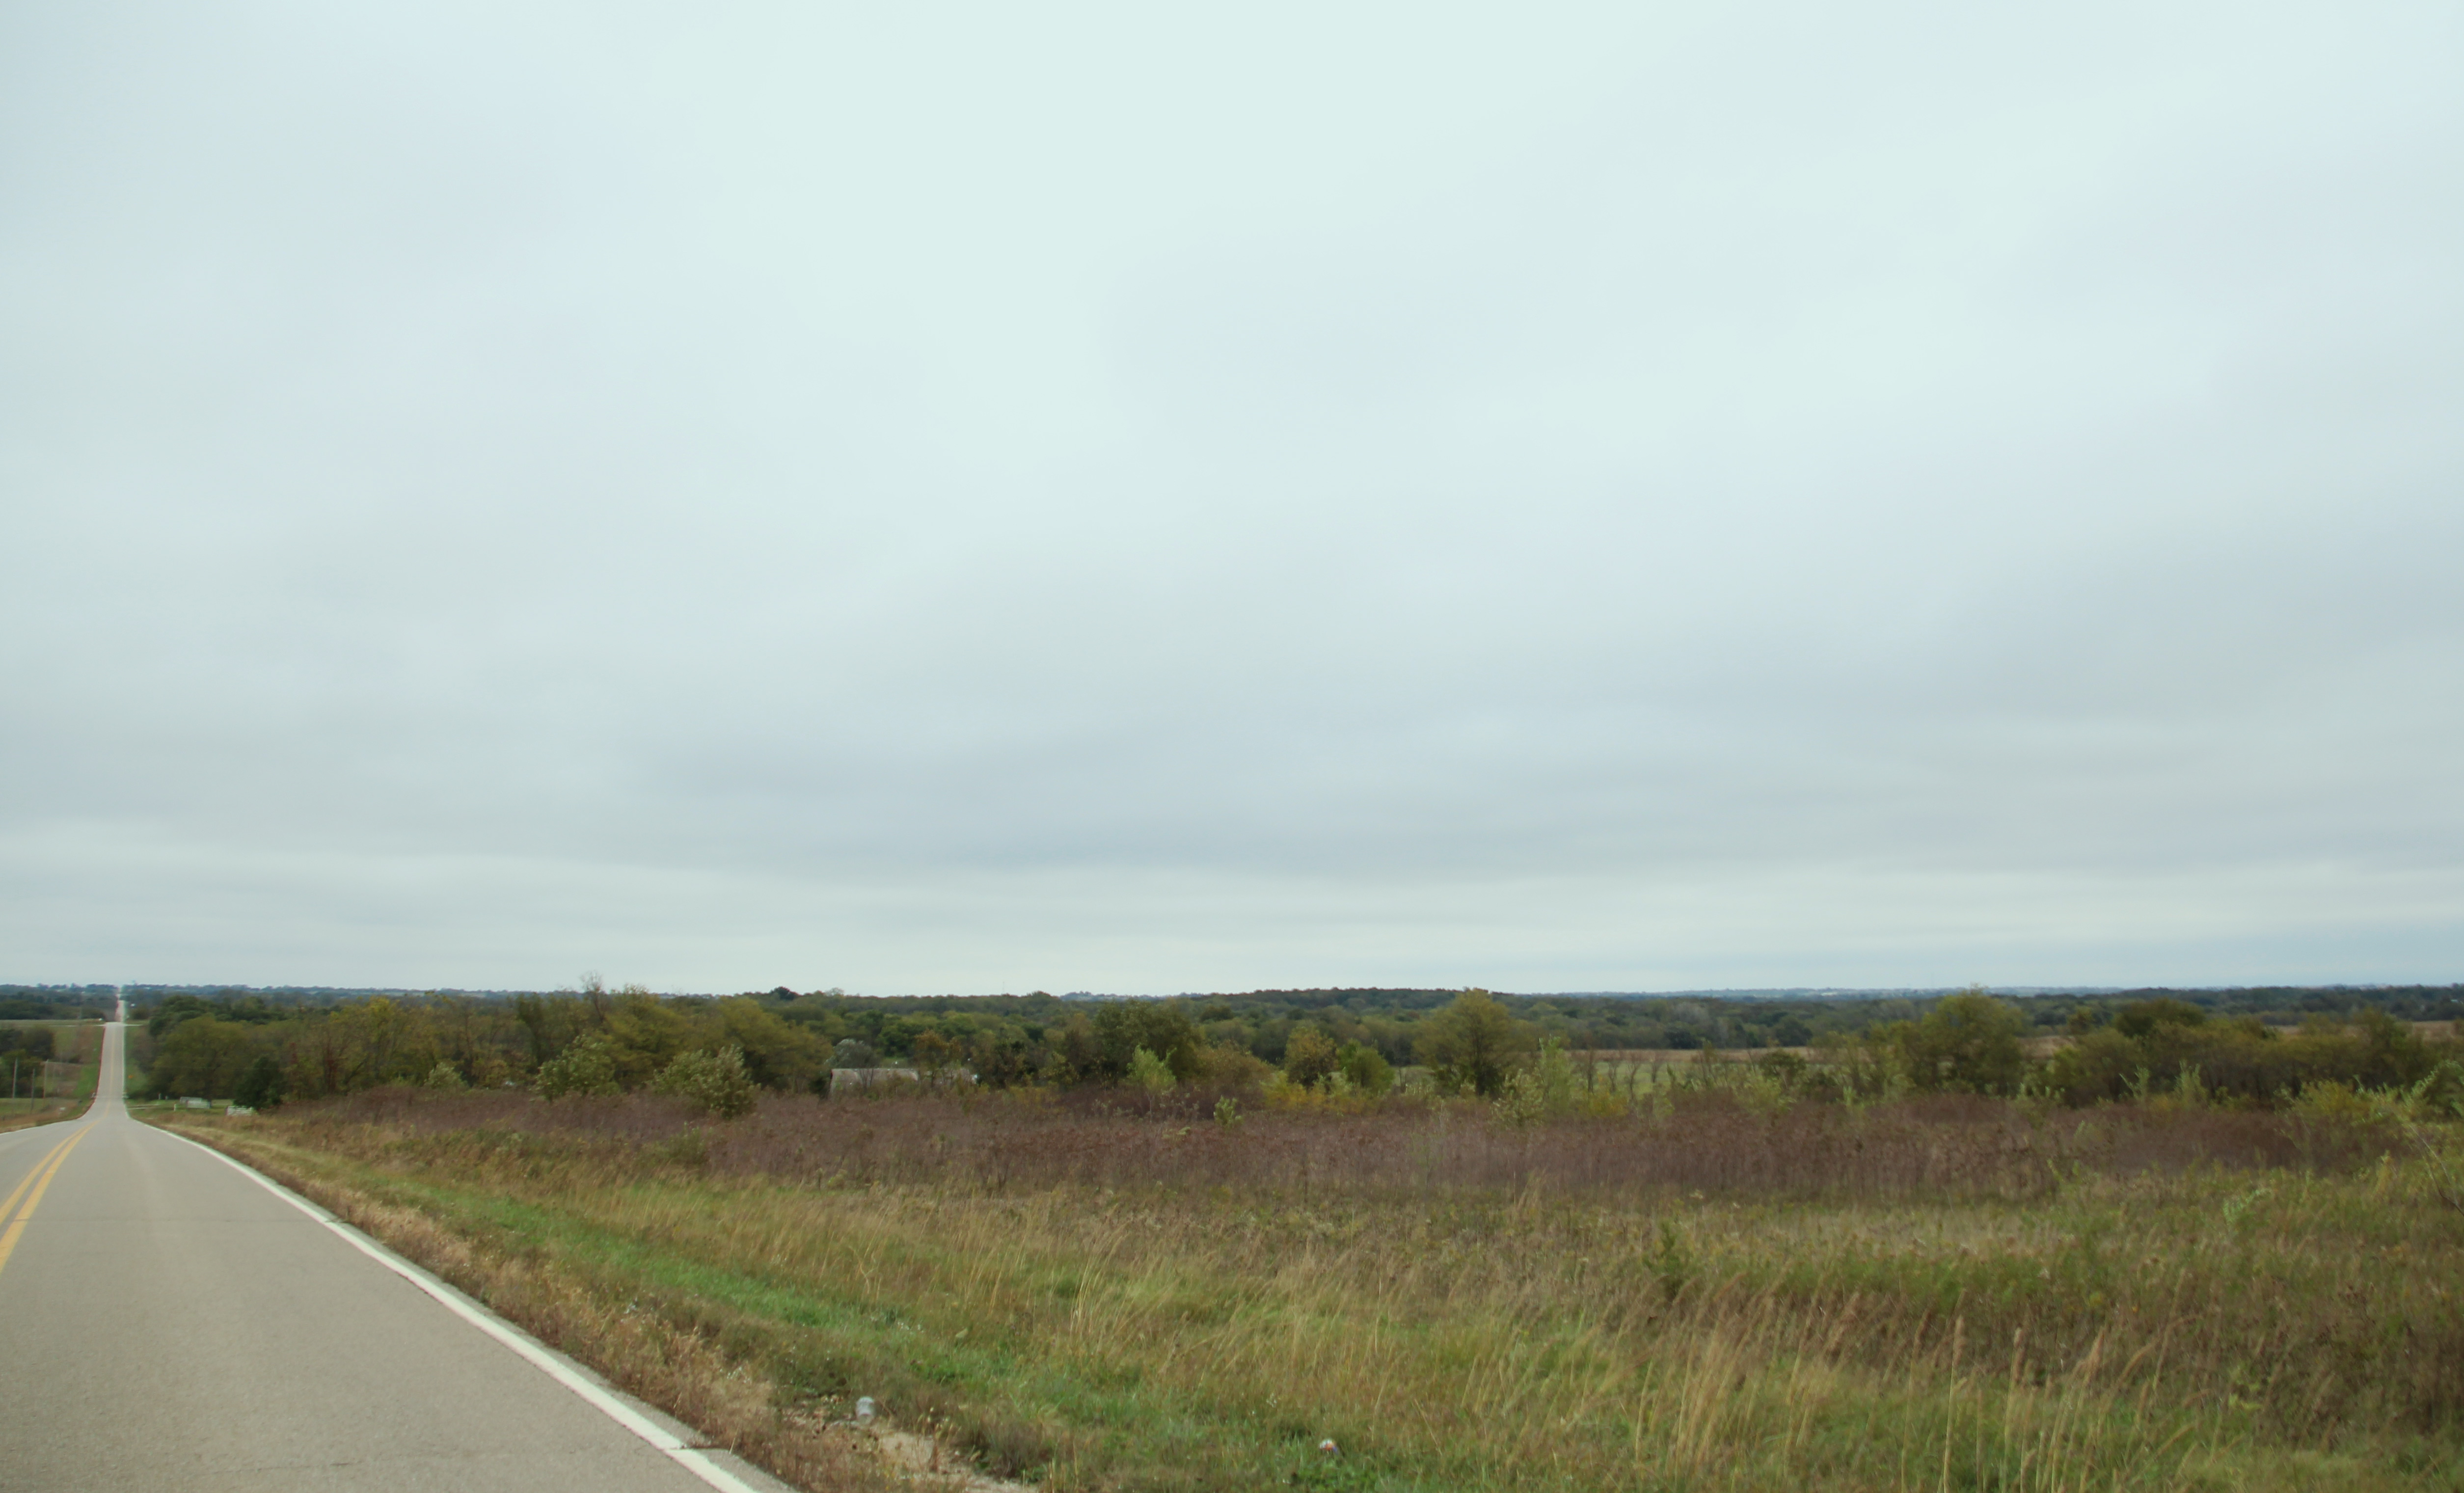 The western horizon of the Prairie Band of Potawatomi Nation reservation.